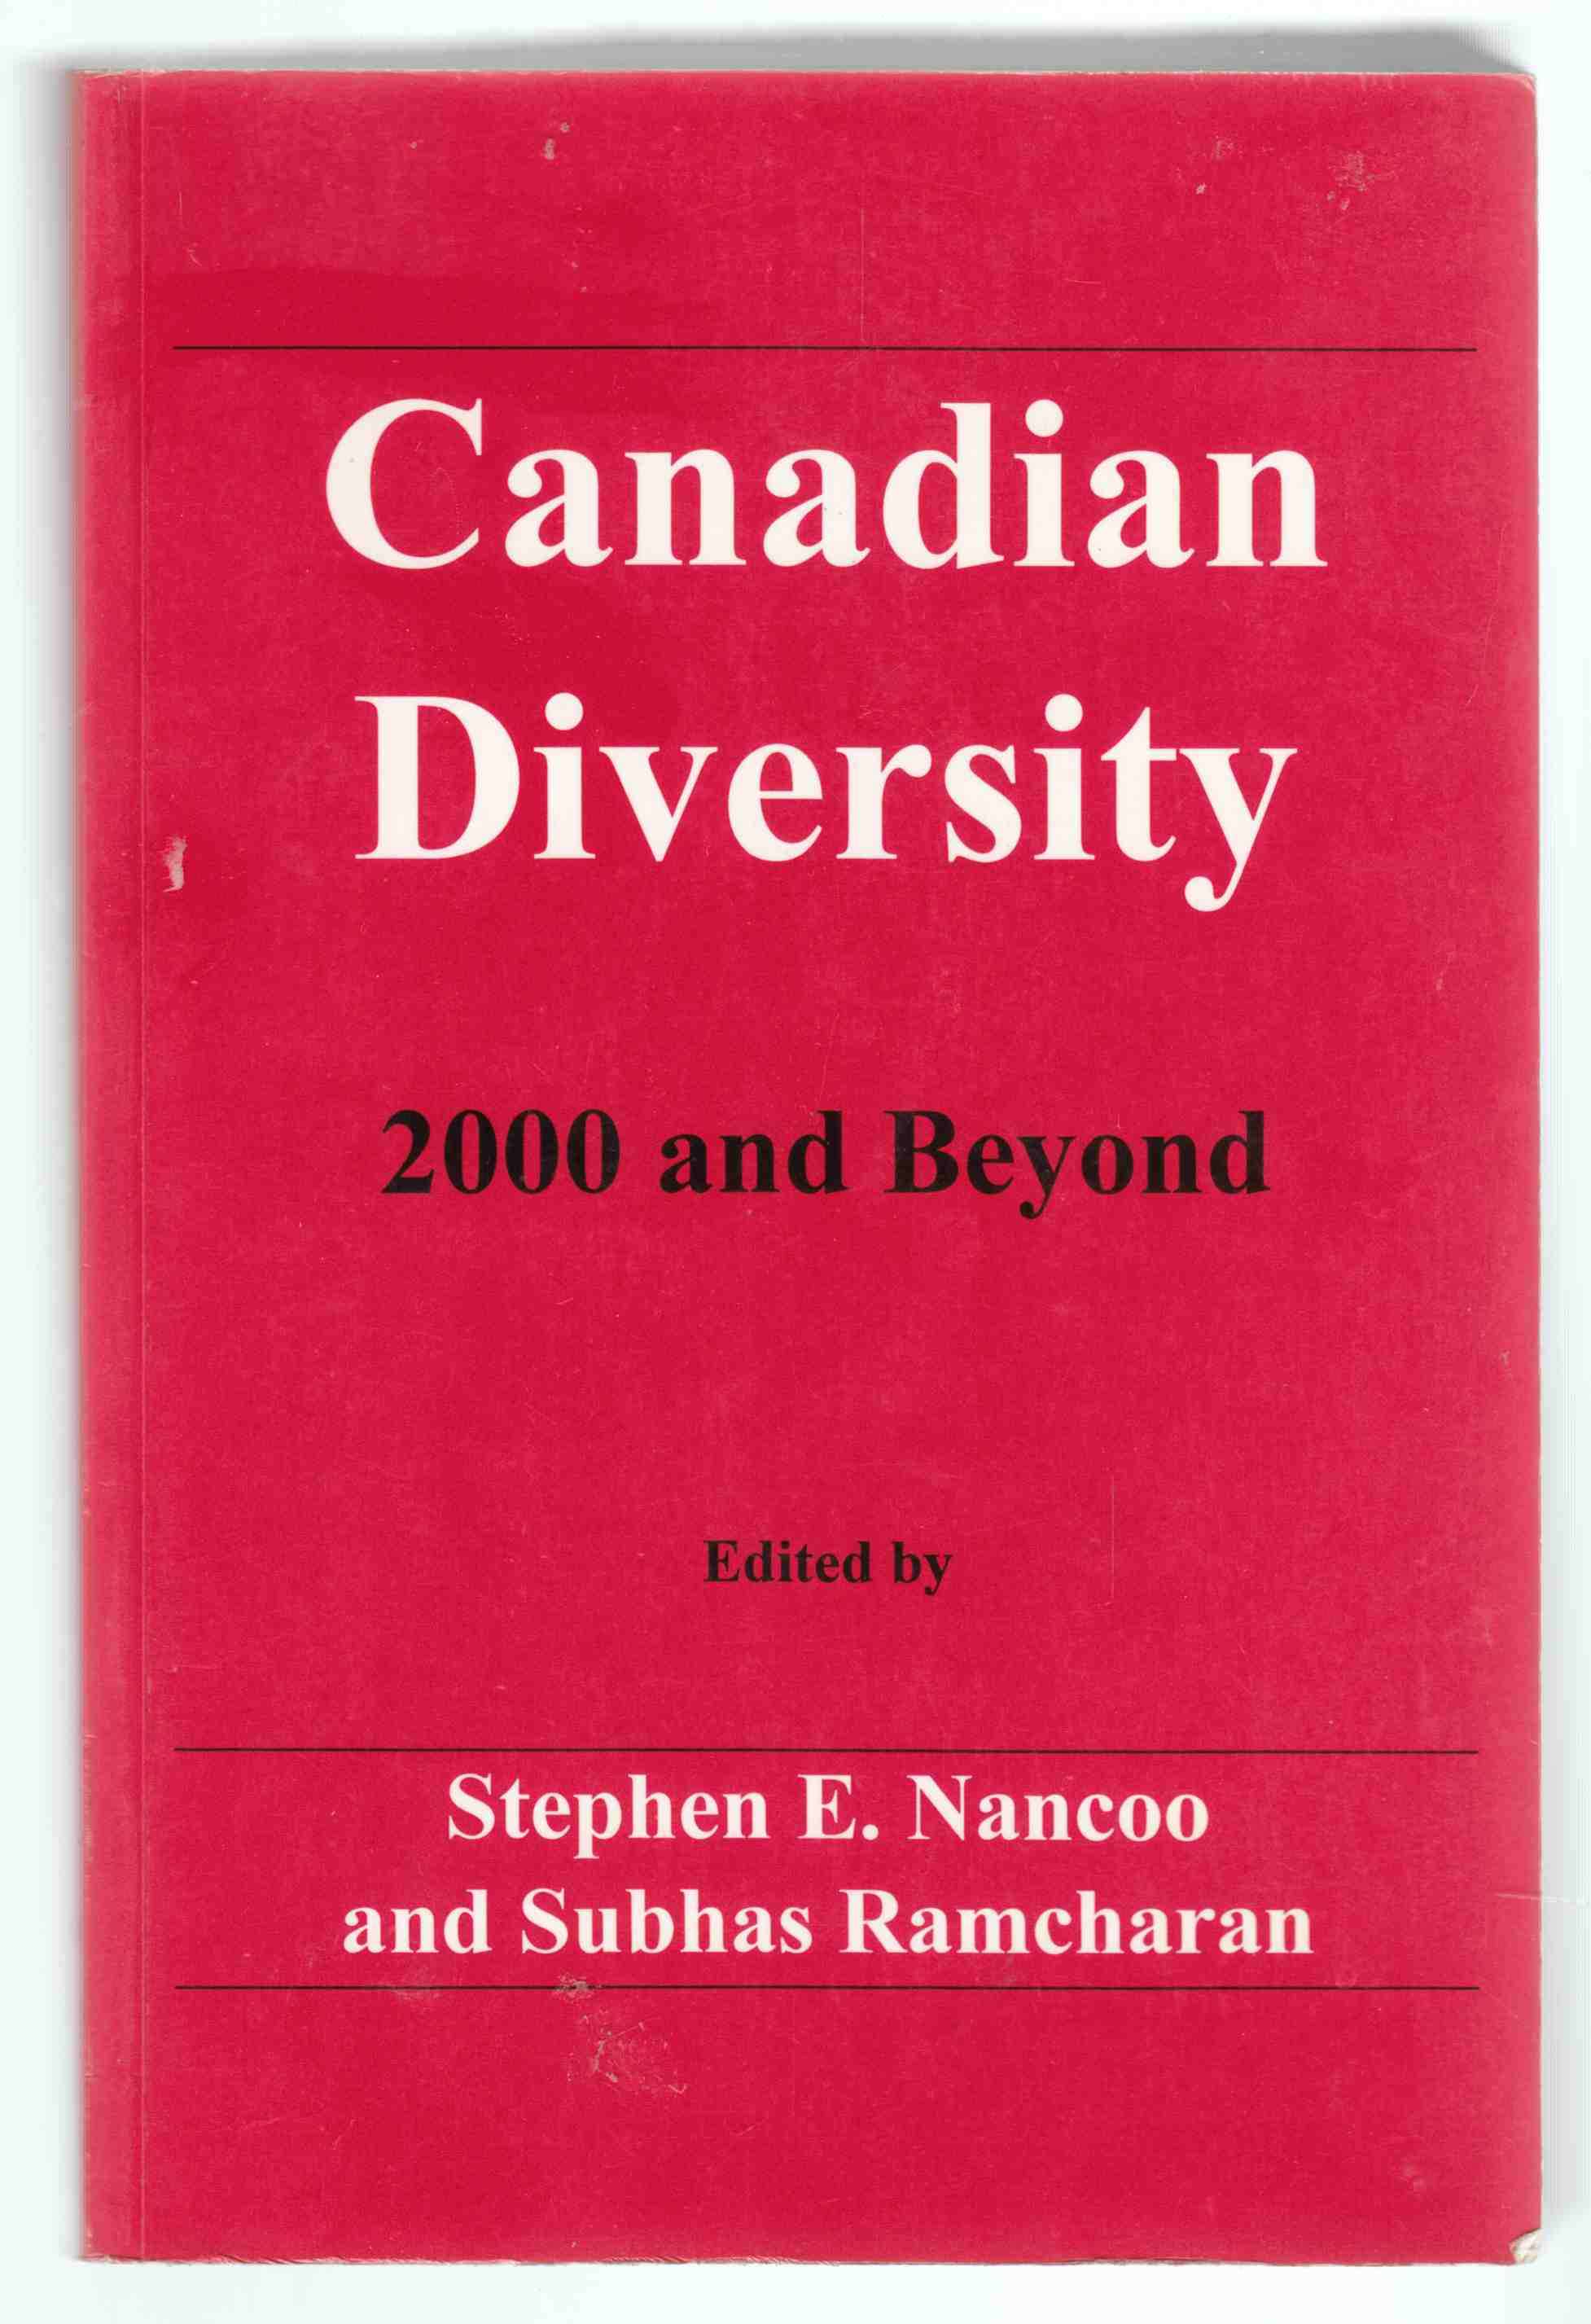 Image for Canadian Diversity 2000 and Beyond